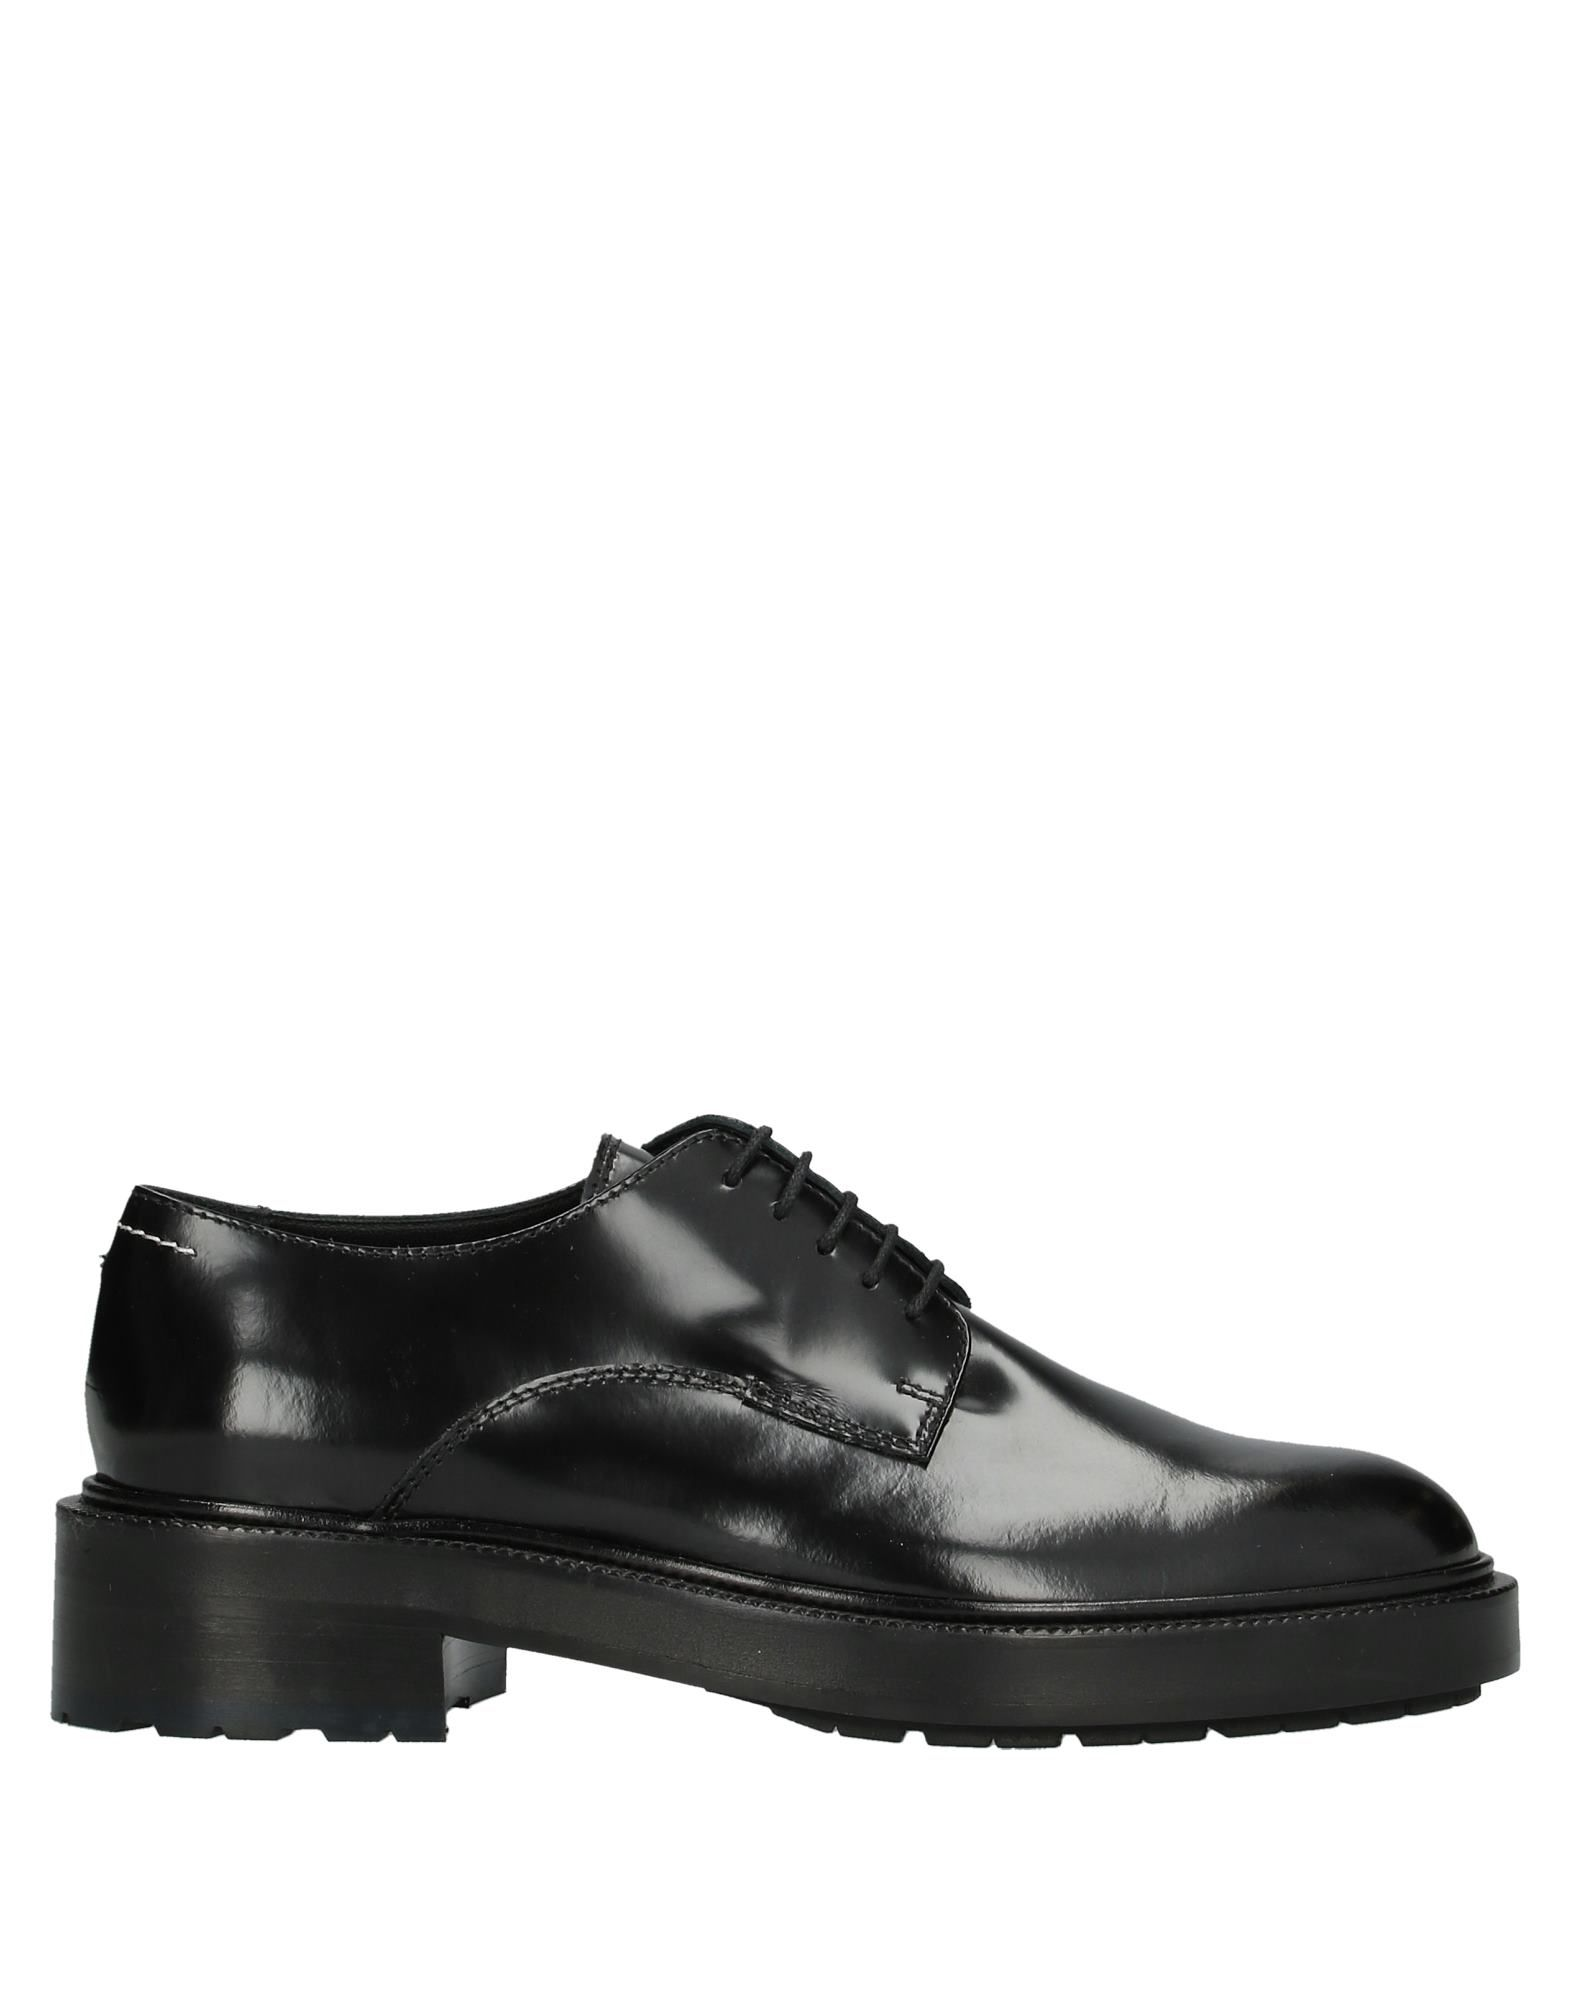 MM6 MAISON MARGIELA Lace-up shoes. polished leather, stitching, solid color, round toeline, square heel, leather lining, rubber cleated sole, contains non-textile parts of animal origin. Soft Leather